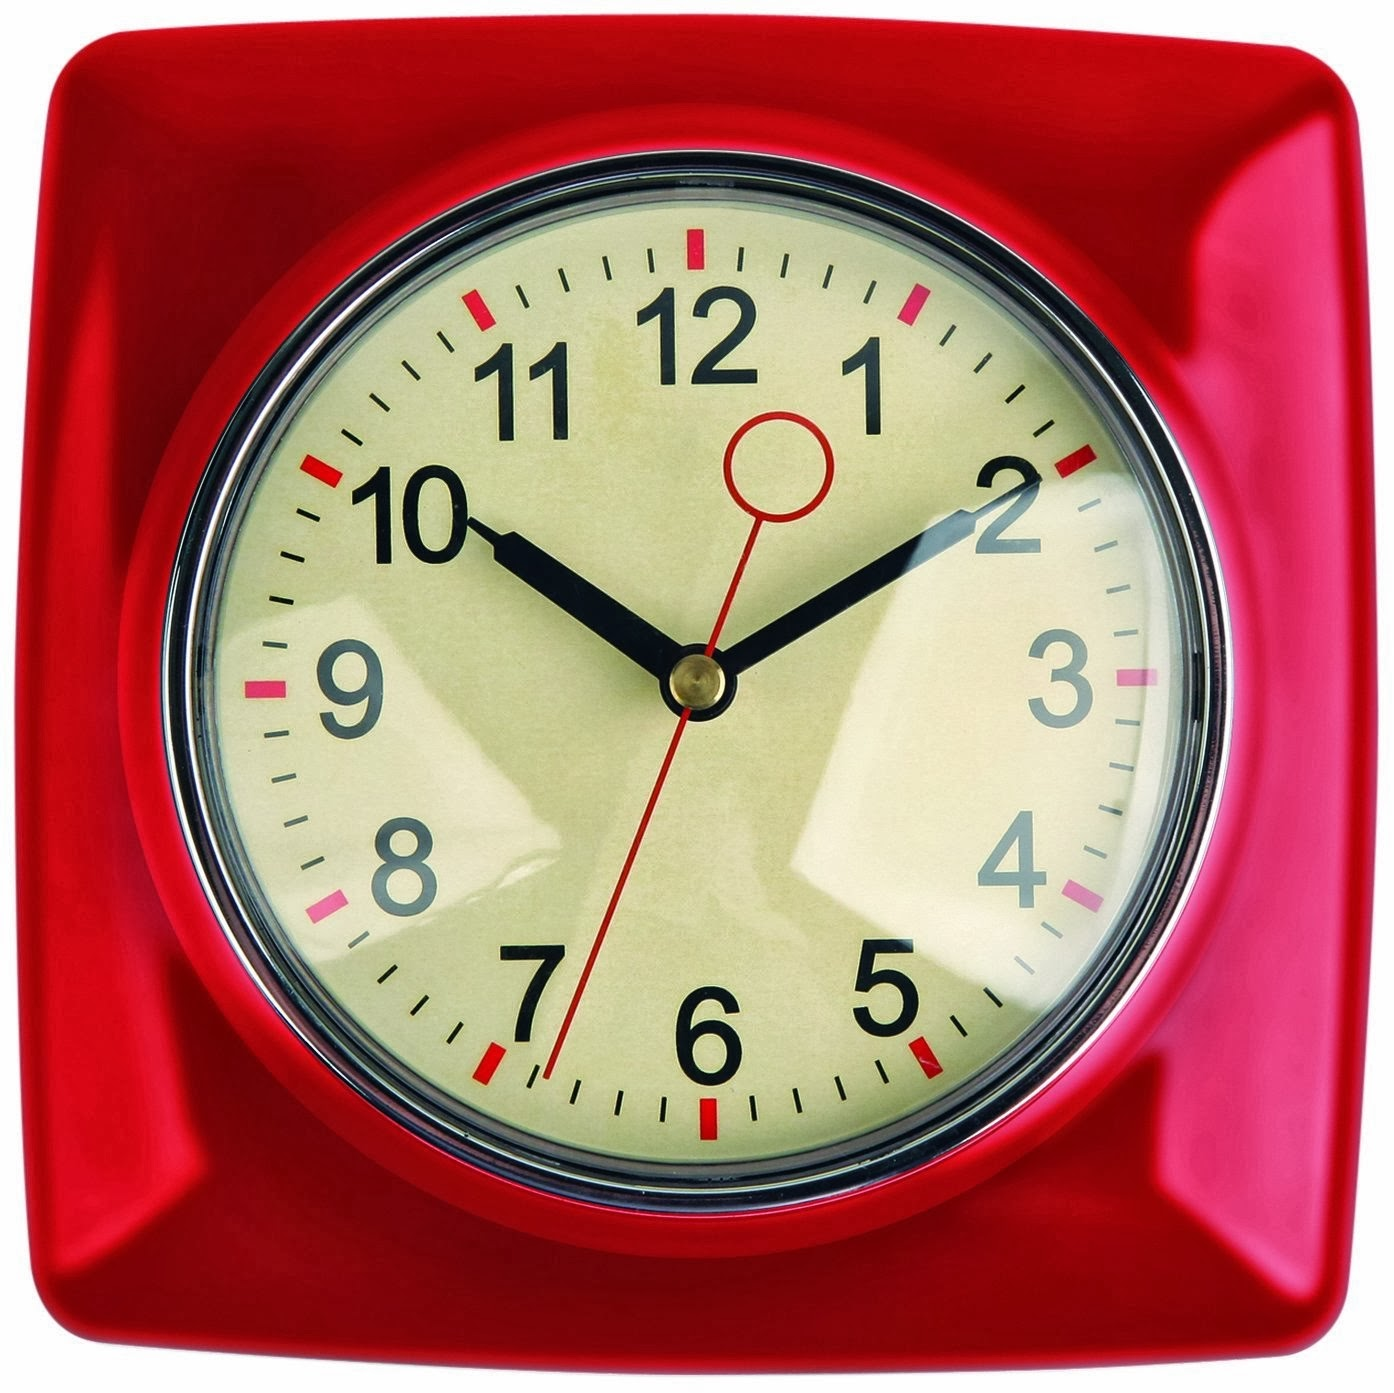 Retro Kitchen Wall Clock, Red And Mint Green